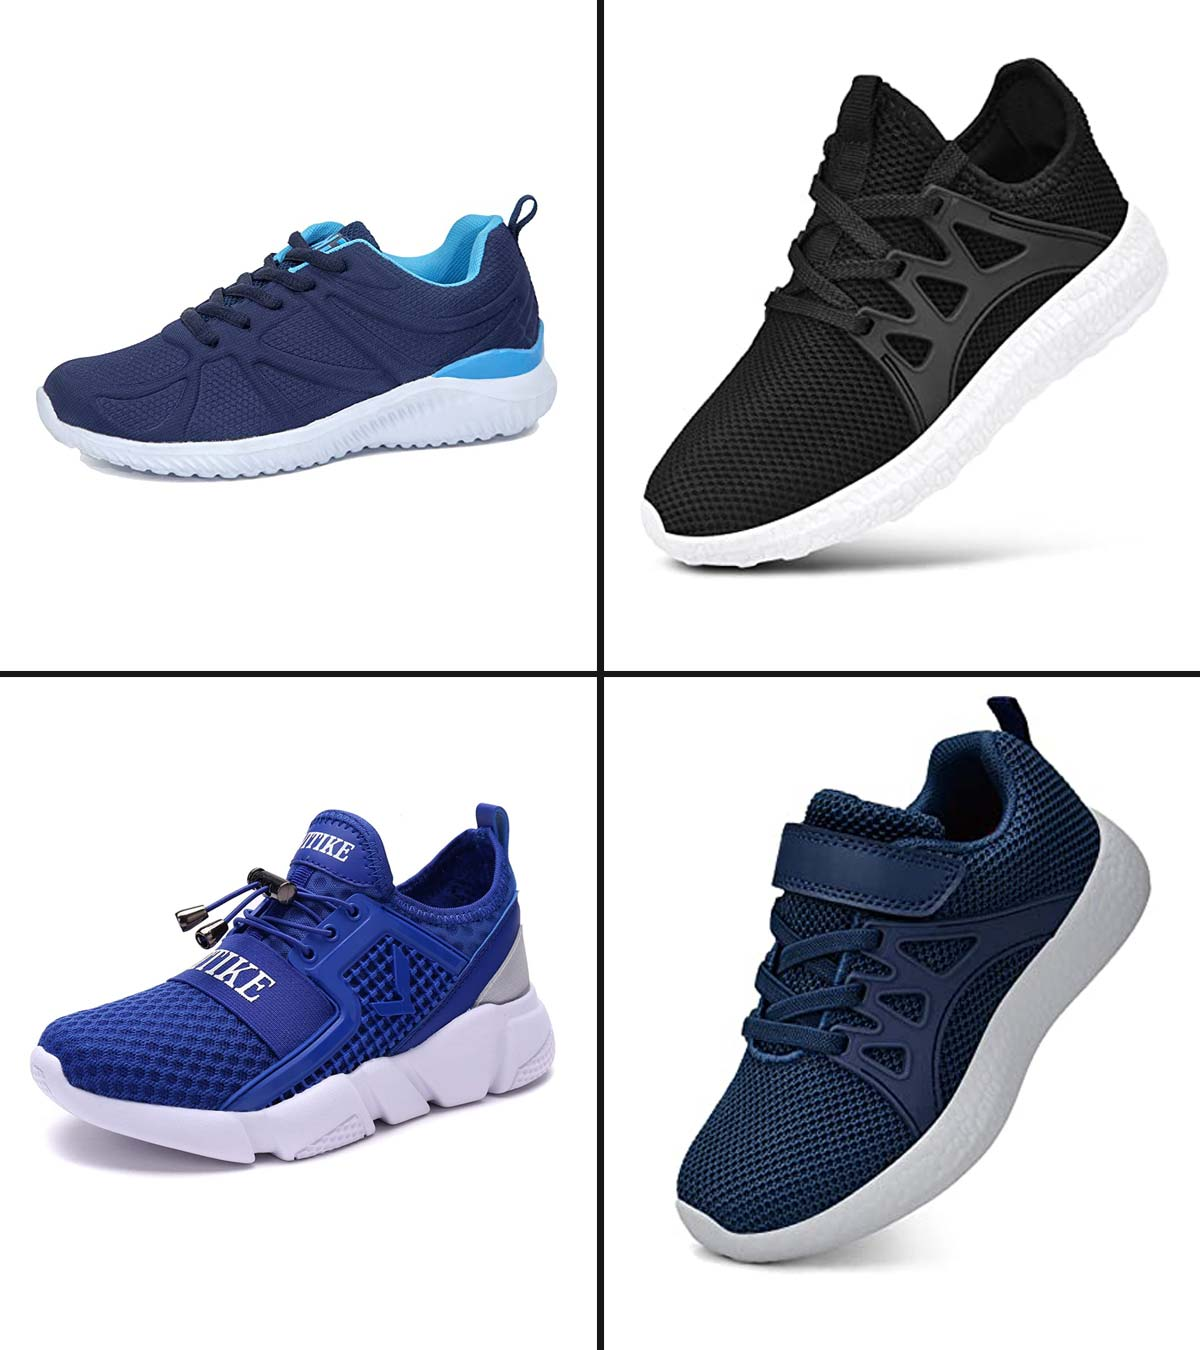 11 Best Tennis Shoes For Kids In 2020